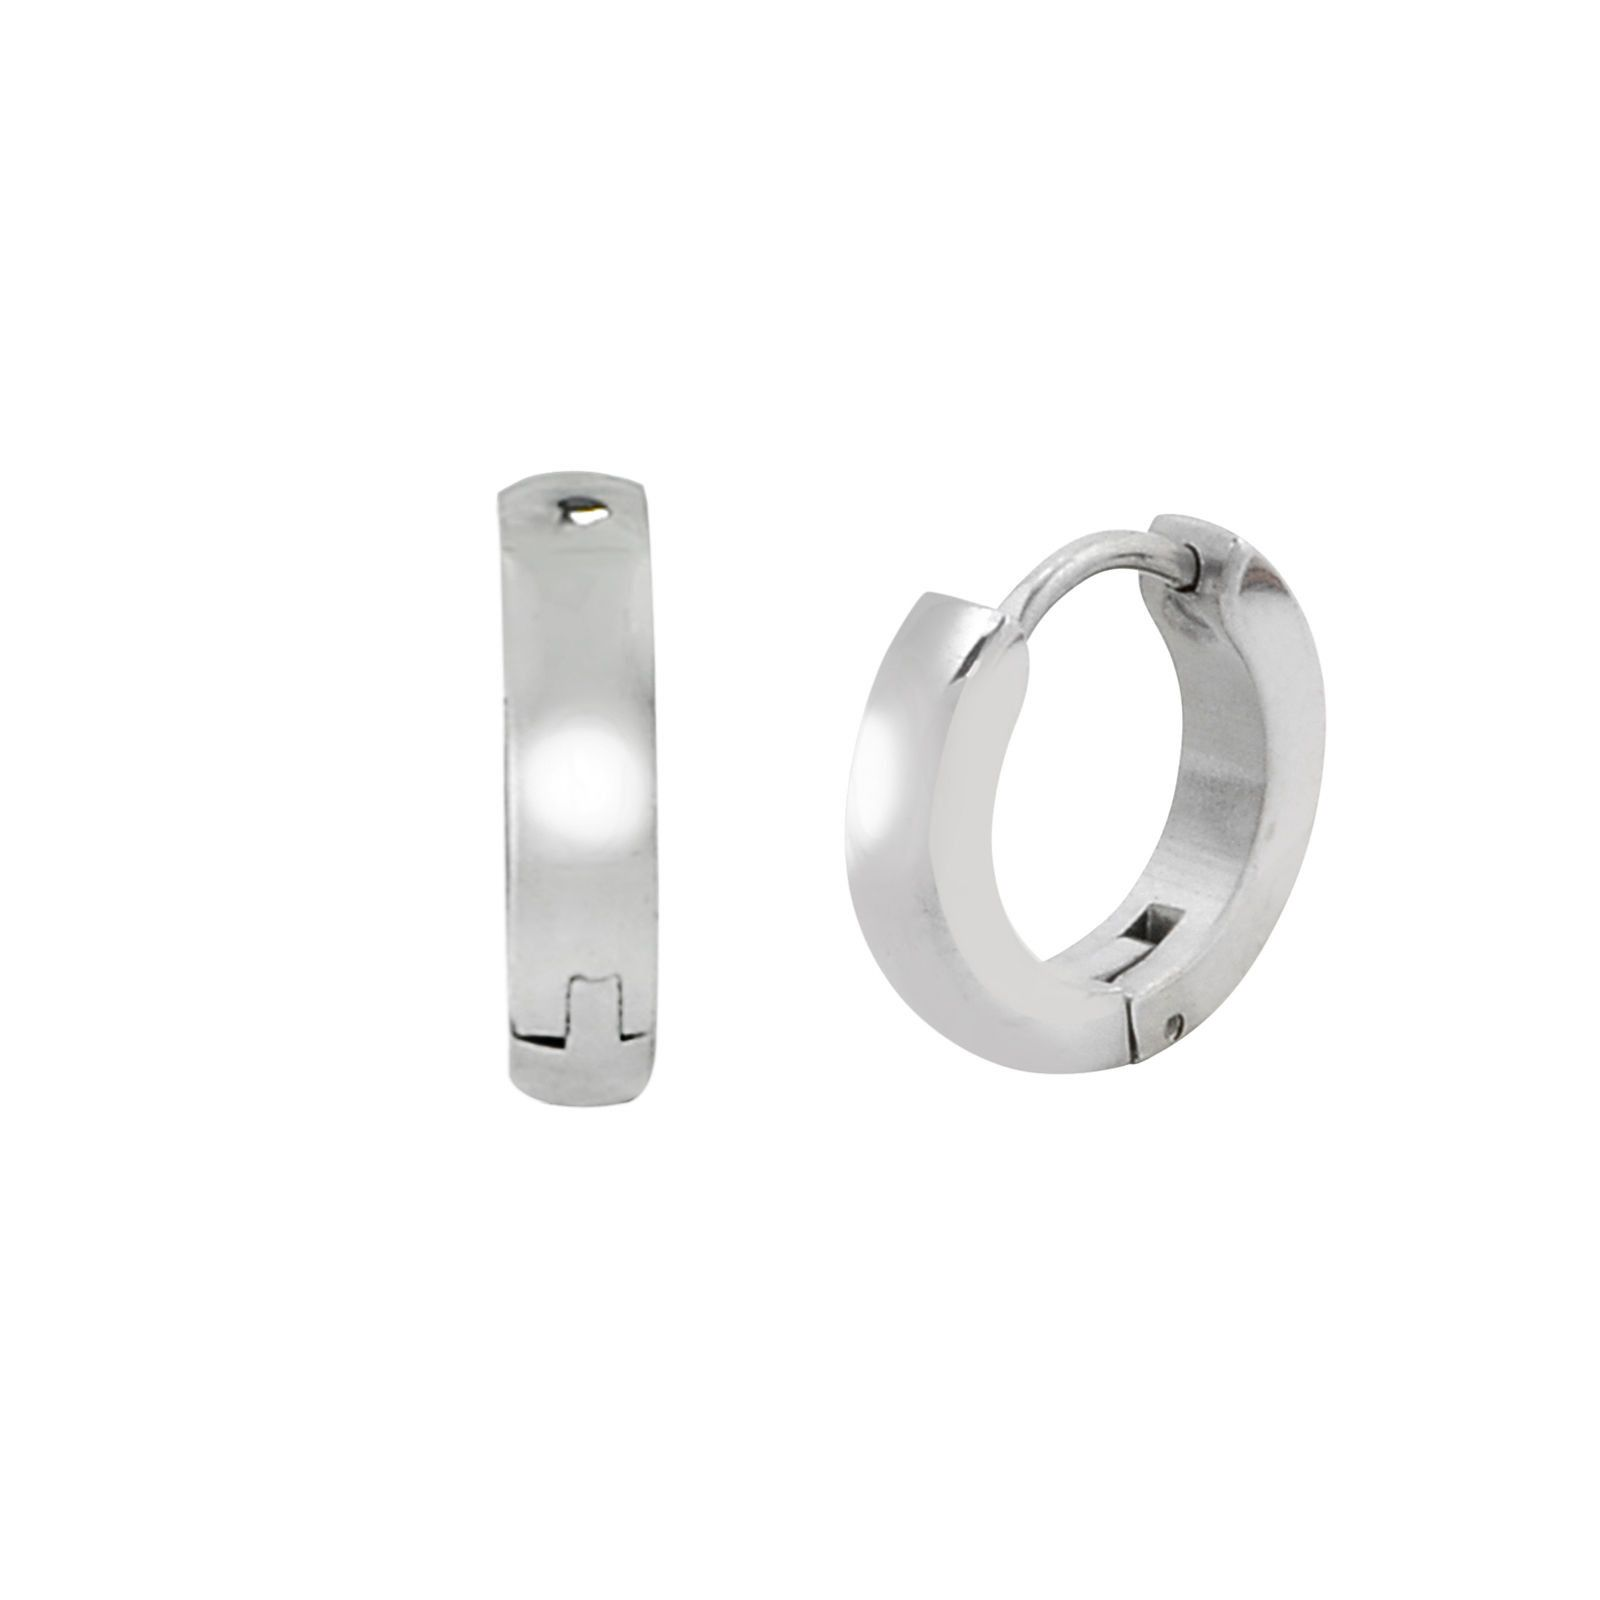 Stainless Steel Huggie Hinged Snap Hoop Earrings 13mm High Polish If you are looking for a great selection of jewelry - at very affordable prices check out www.jewelryland.com. If you like these earrings please feel free to repin or leave a comment.